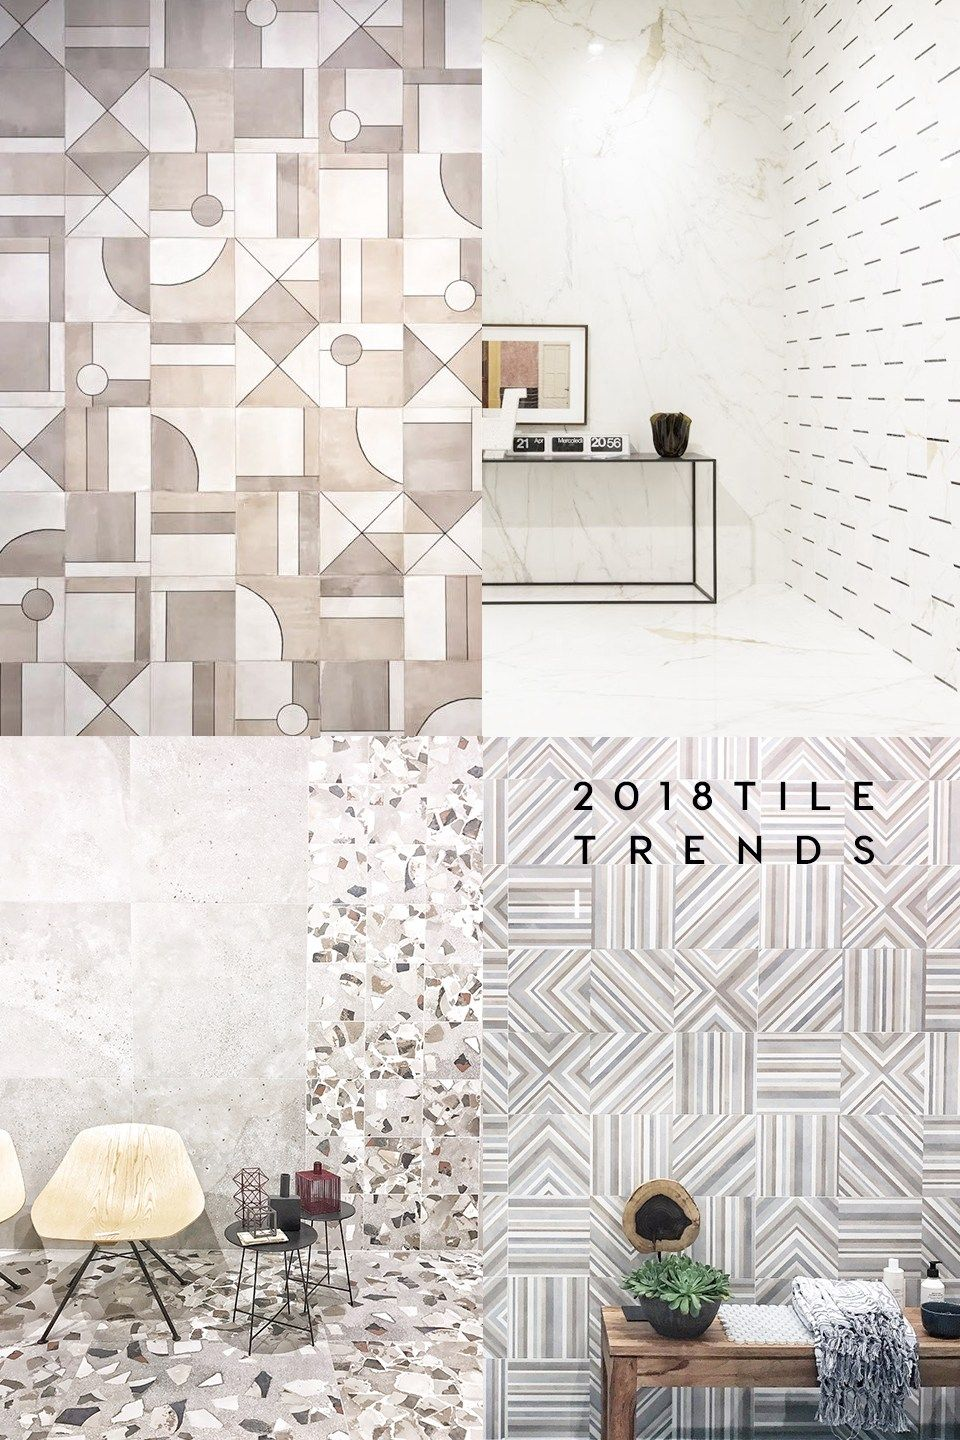 Tile trends to watch out for 2018 from cersaie 2017 for Bathroom trends 2018